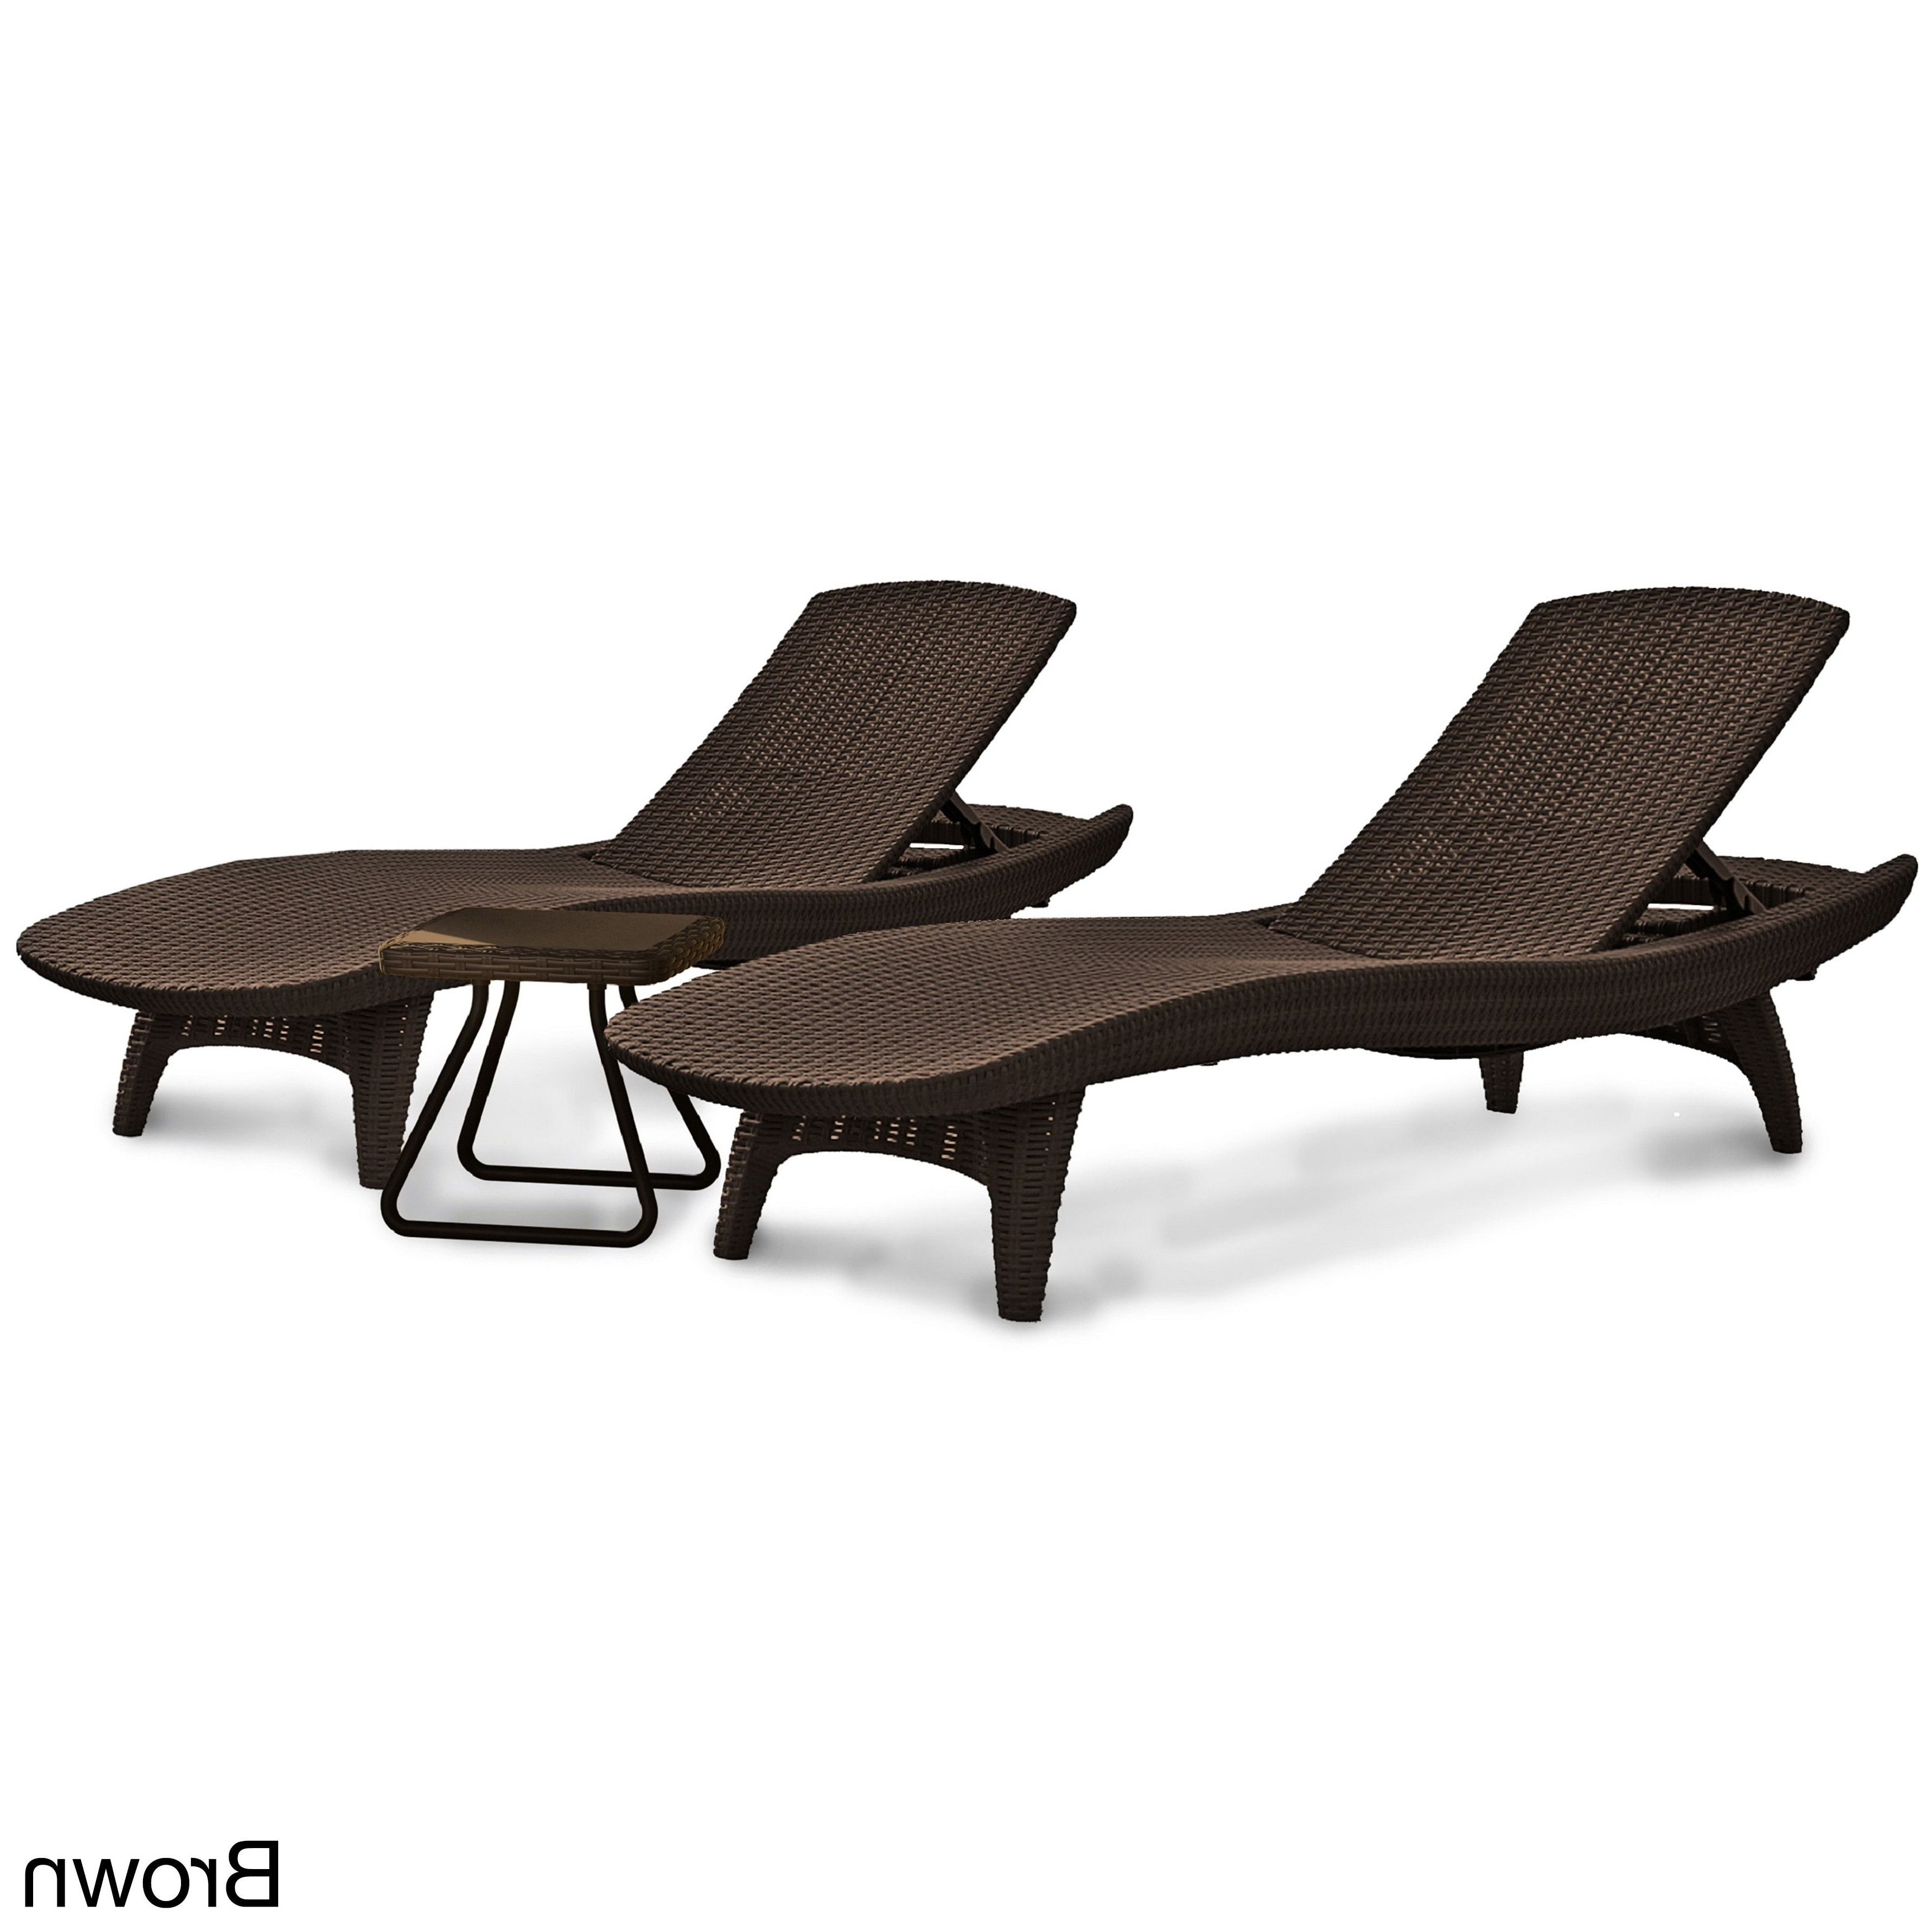 2020 Hanover Halsted Padded Chaises Pertaining To Keter 3 Piece All Weather Adjustable Patio Sun Loungers And (View 23 of 25)